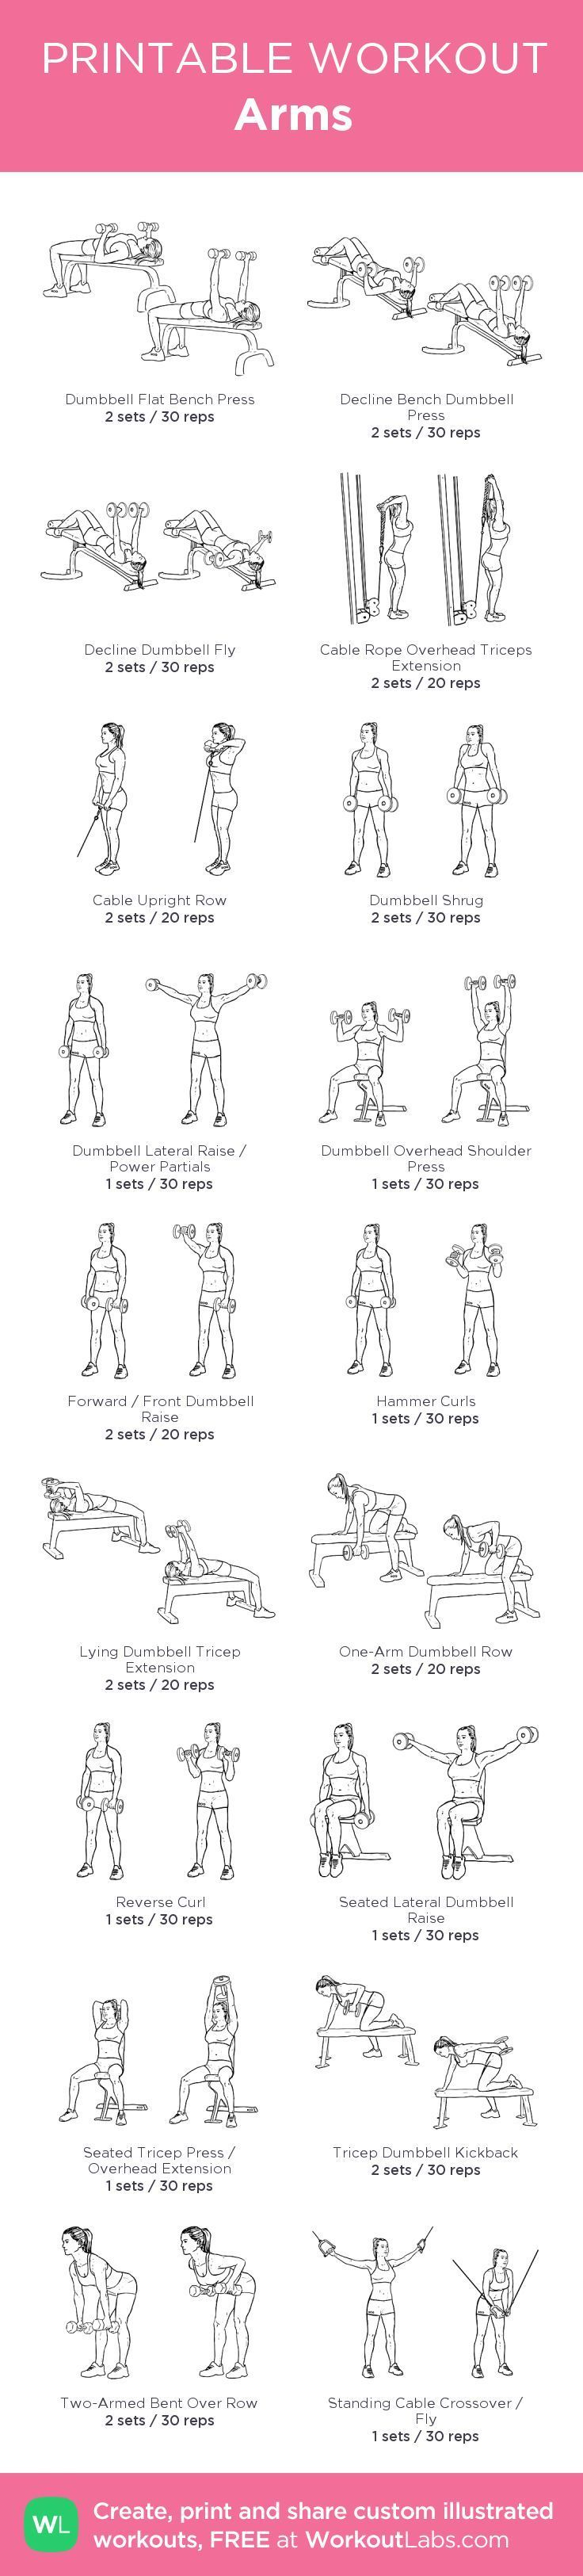 Home Workout Plan For Men best 25+ 5 day workout plan ideas on pinterest | weekly workout